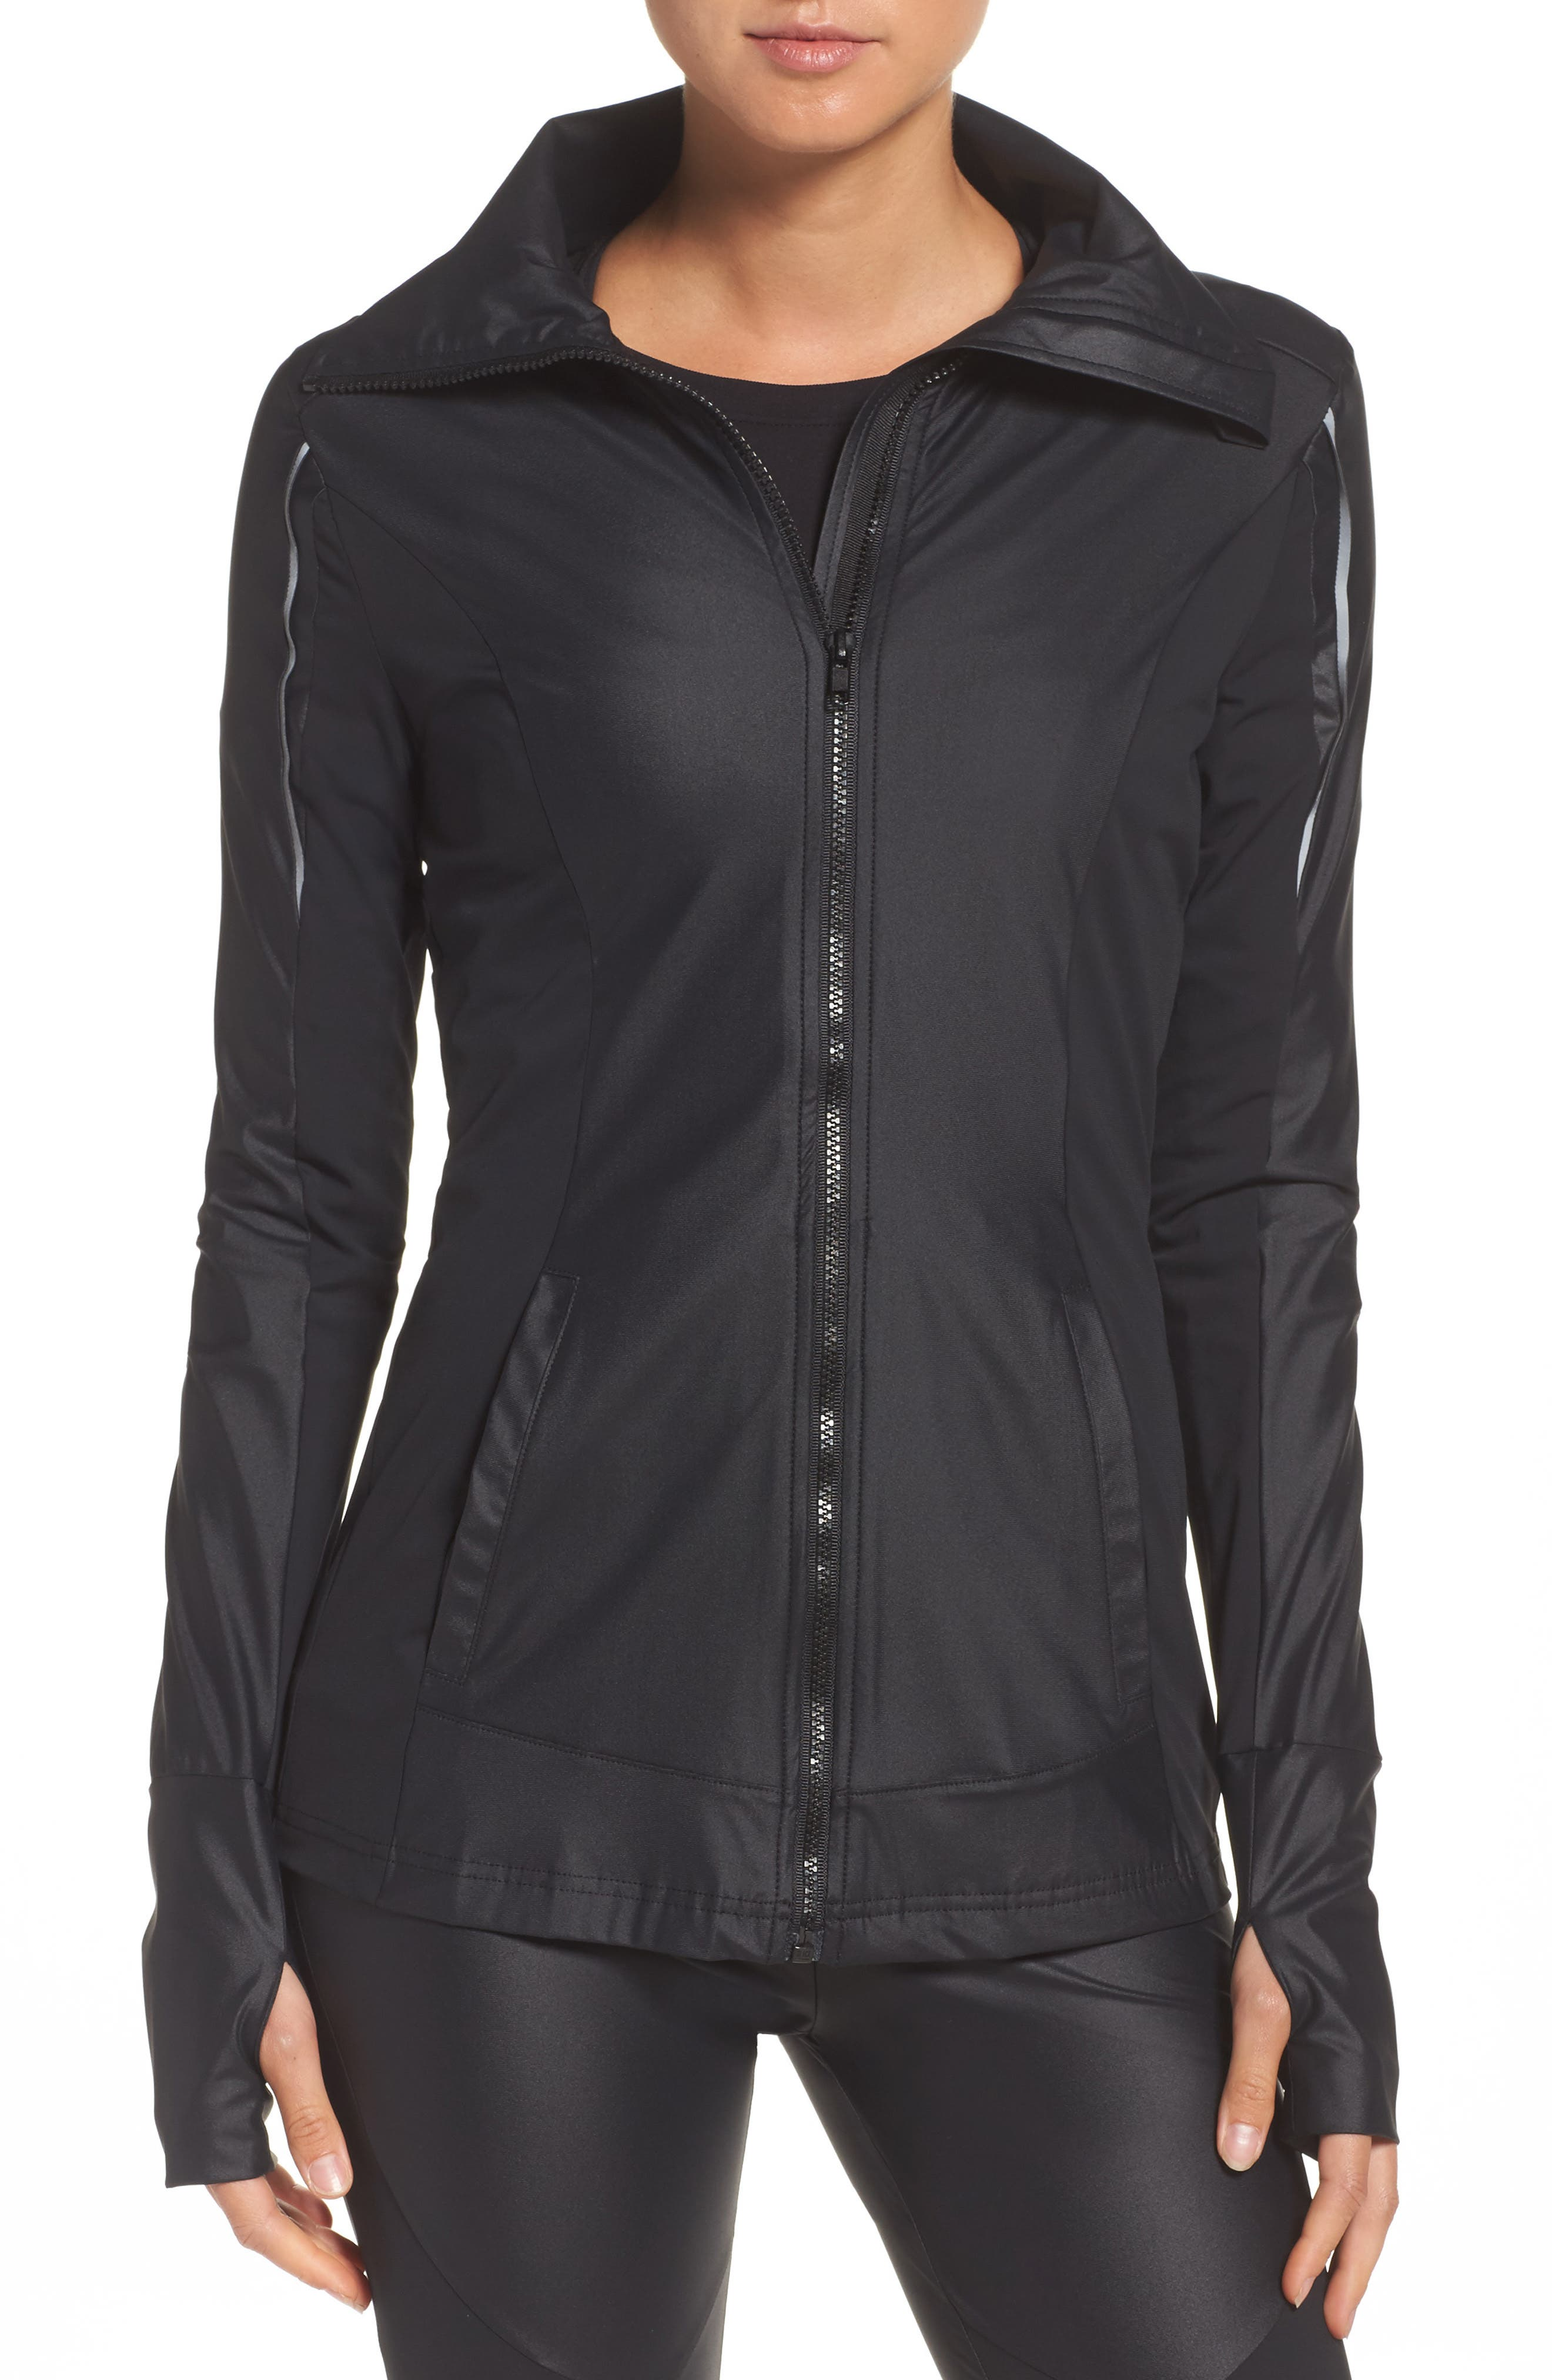 BoomBoom Athletica Lightweight Jacket,                             Main thumbnail 1, color,                             Black